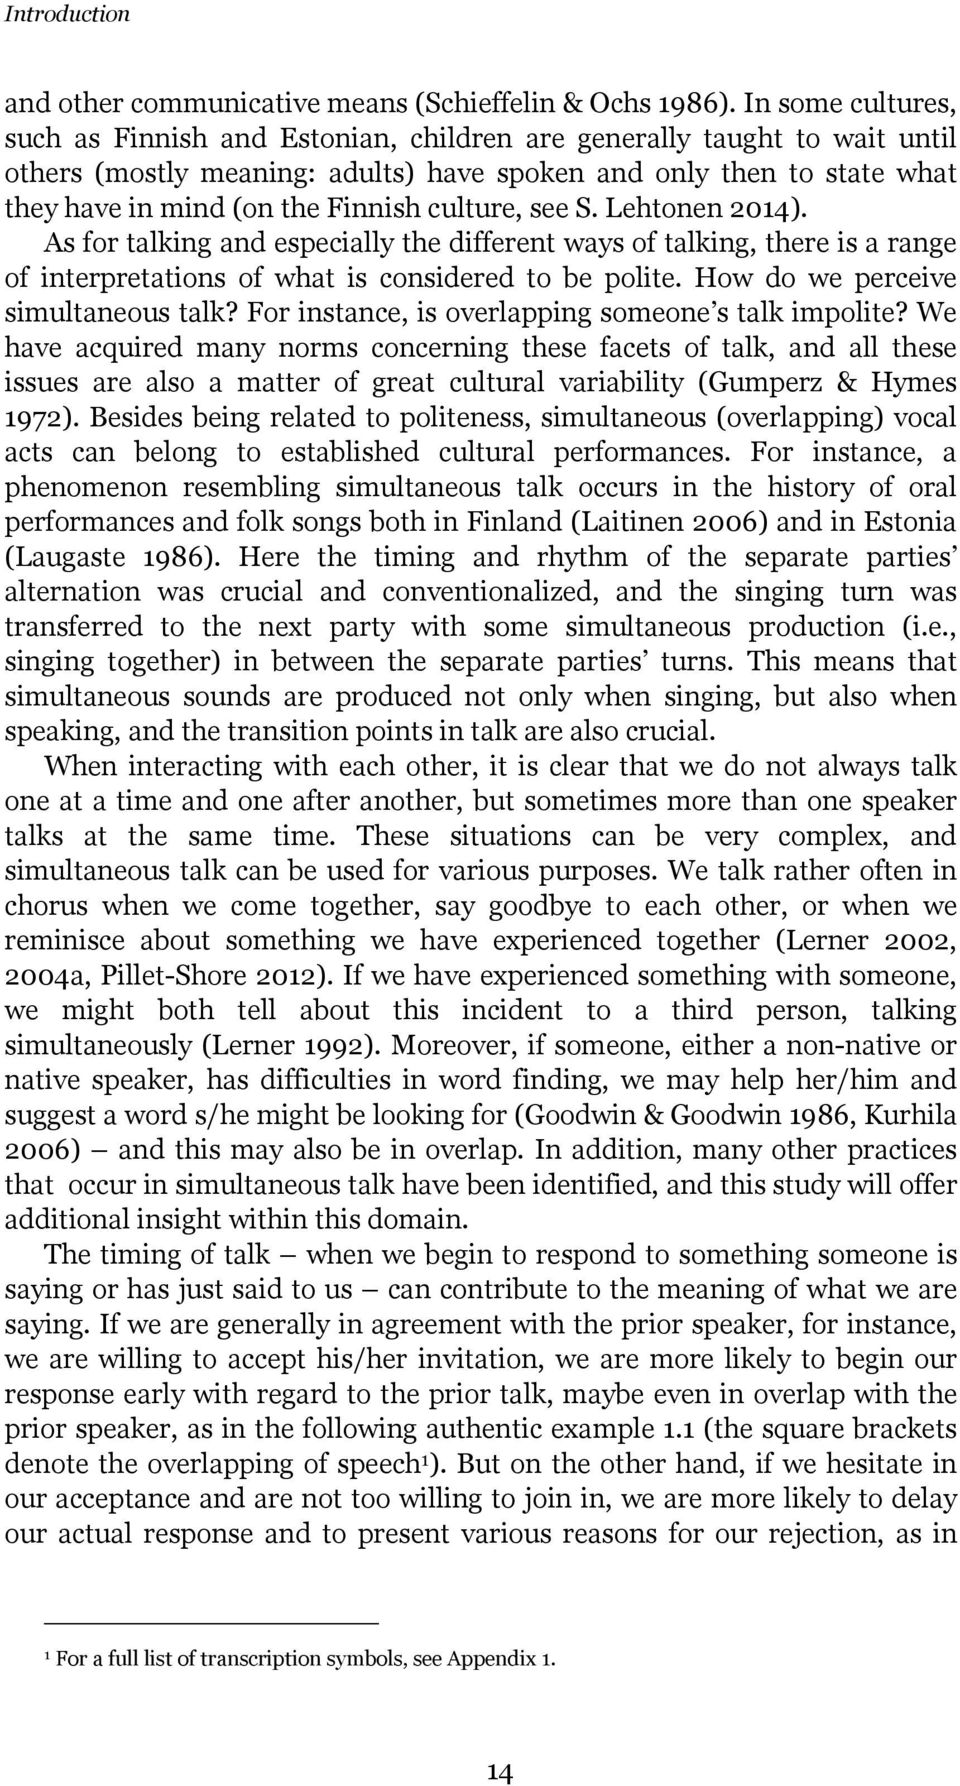 culture, see S. Lehtonen 2014). As for talking and especially the different ways of talking, there is a range of interpretations of what is considered to be polite.